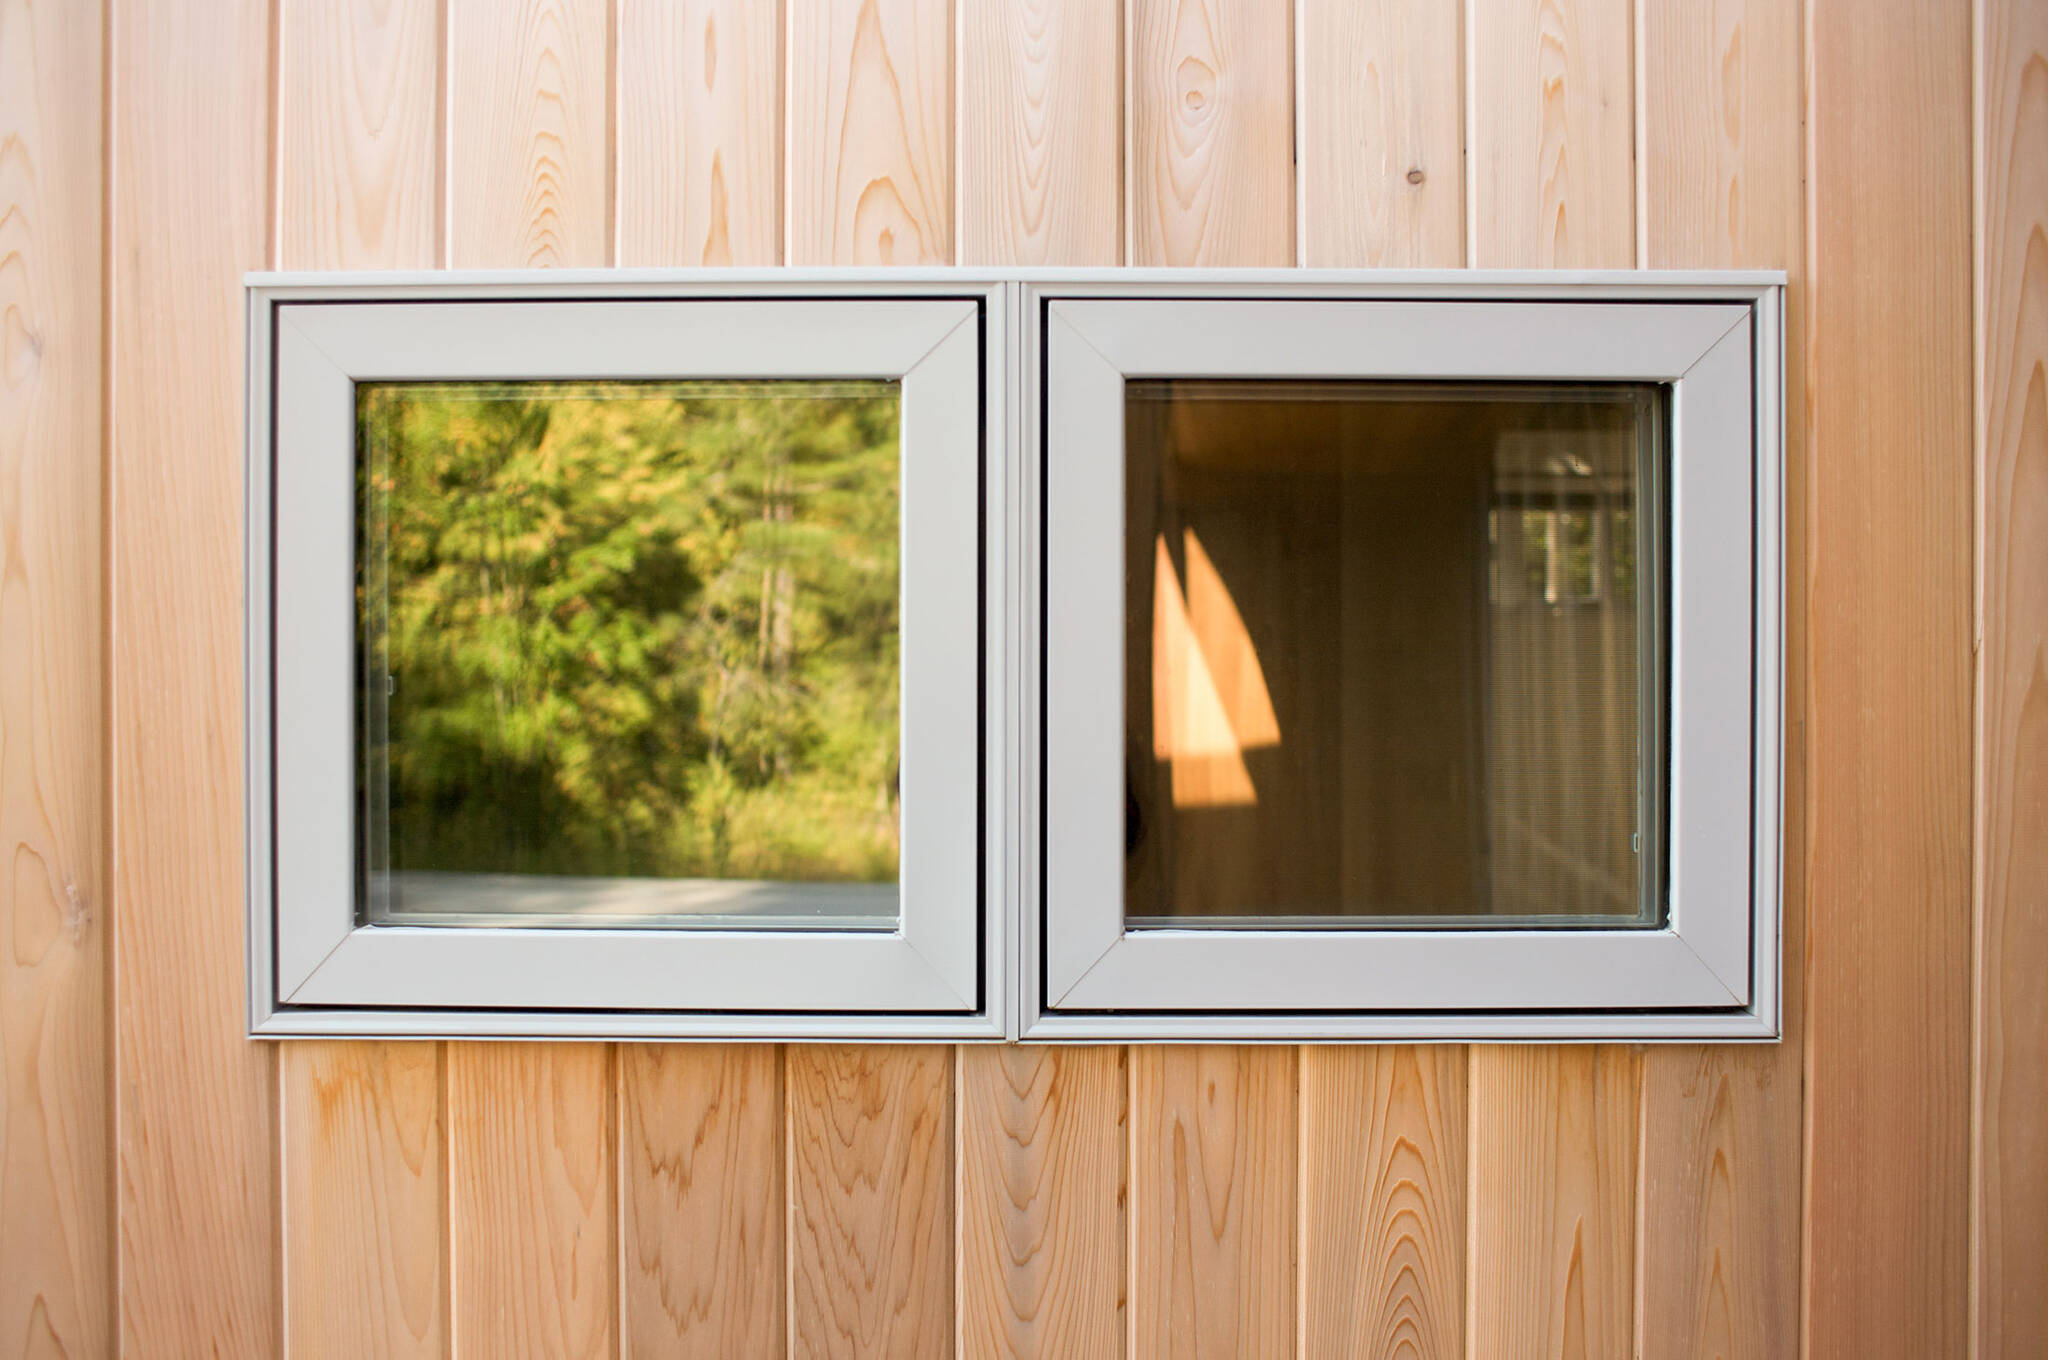 Window detail and vertical cedar siding of the sustainable lake house project in Omena, Michigan designed by the architecture studio Danny Forster & Architecture